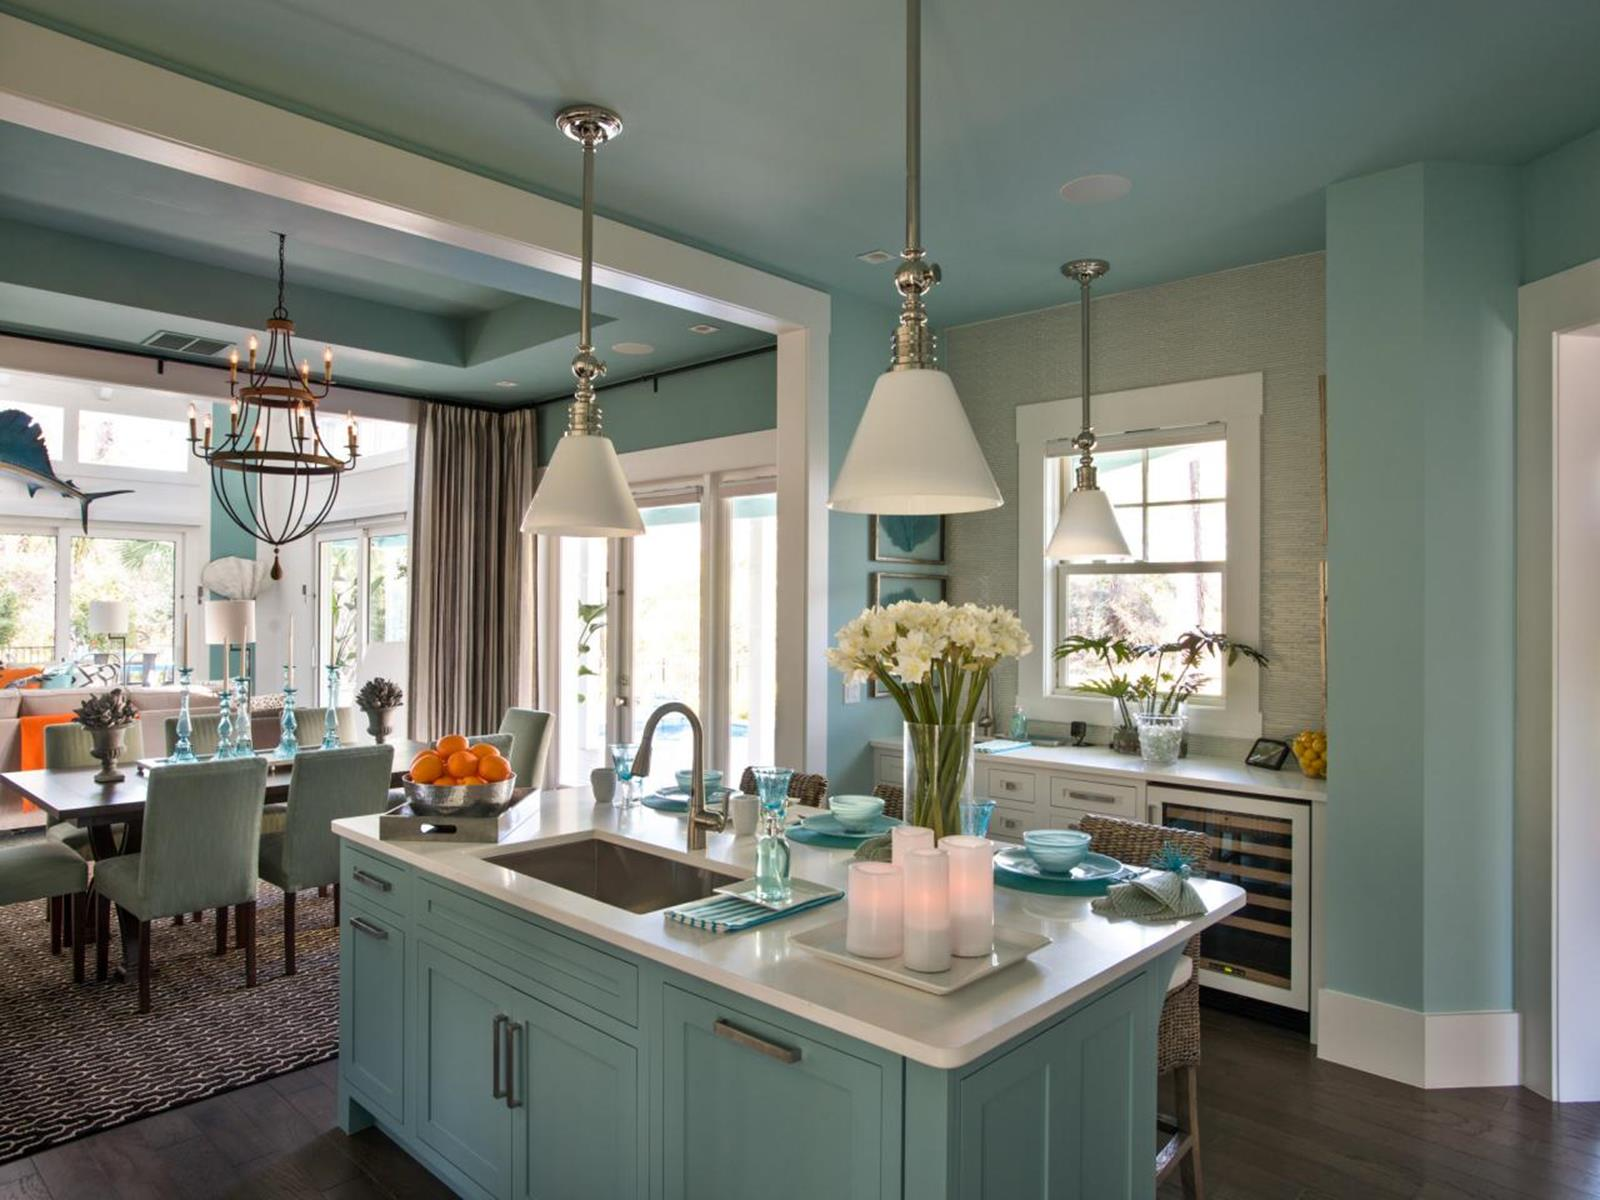 Projects to Make Kitchen More Neat and Beautiful 40